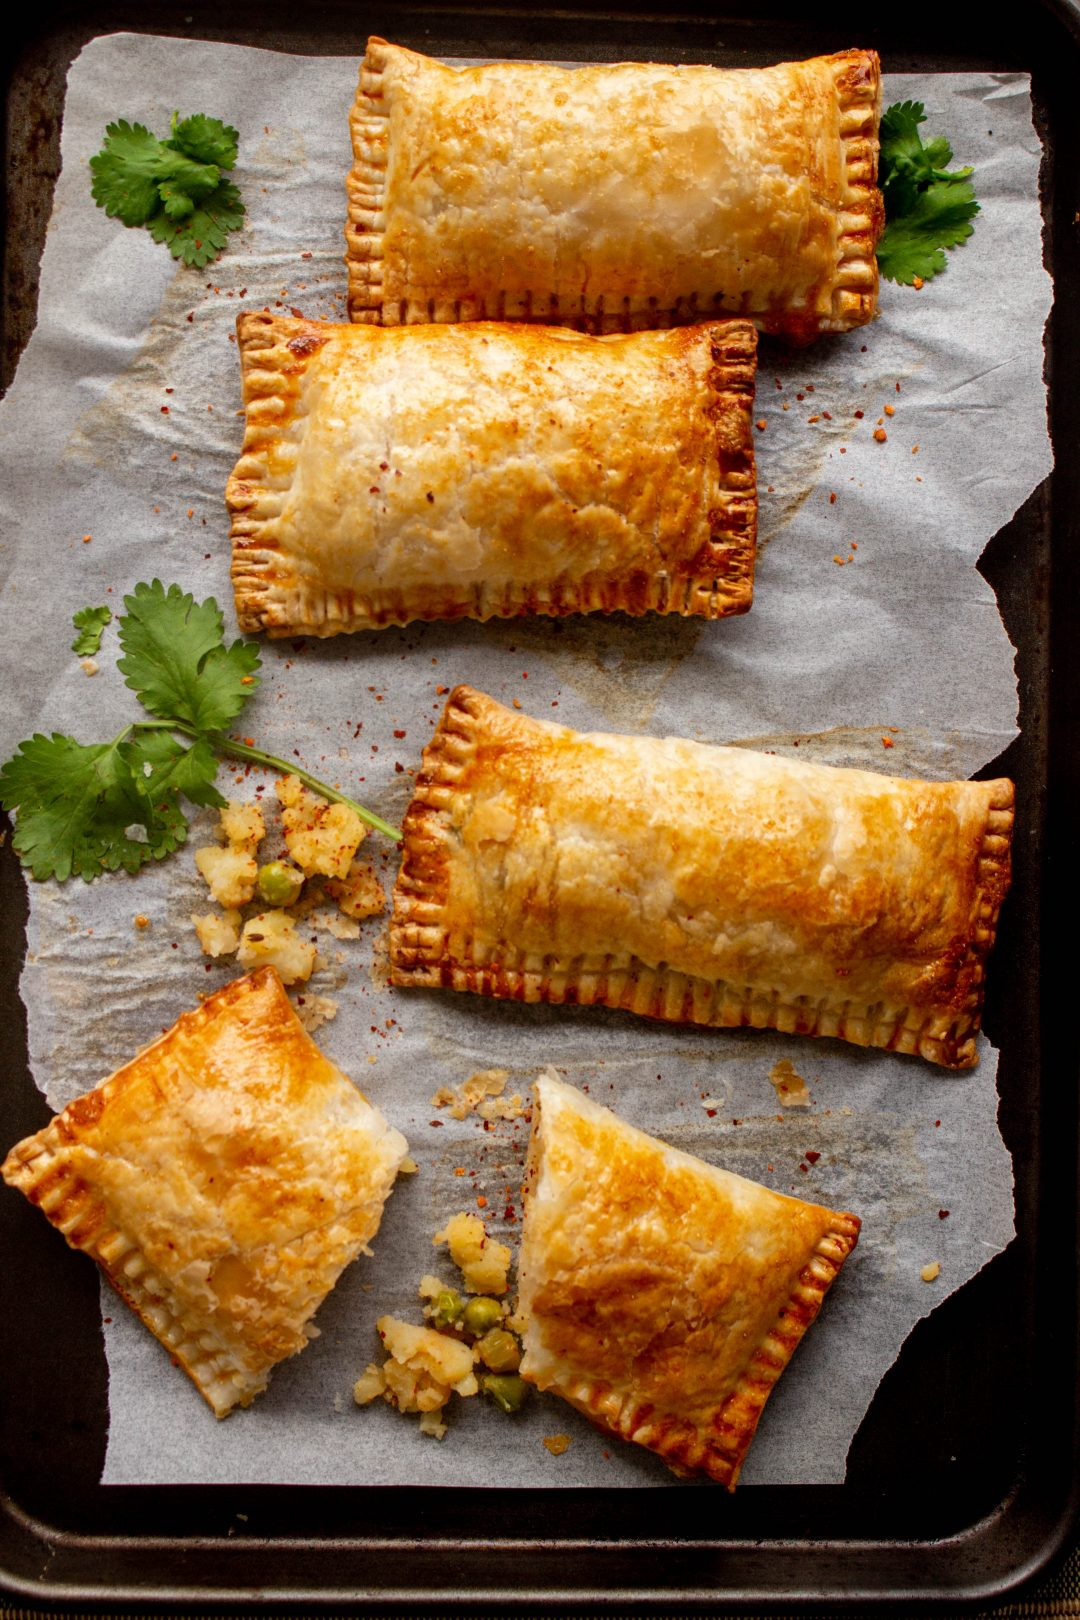 These Pakistani bakery style vegetable patties or vegetable puffs are a perfect tea time snack with a spicy potato and peas filling encased in crispy flaky puff pastry.